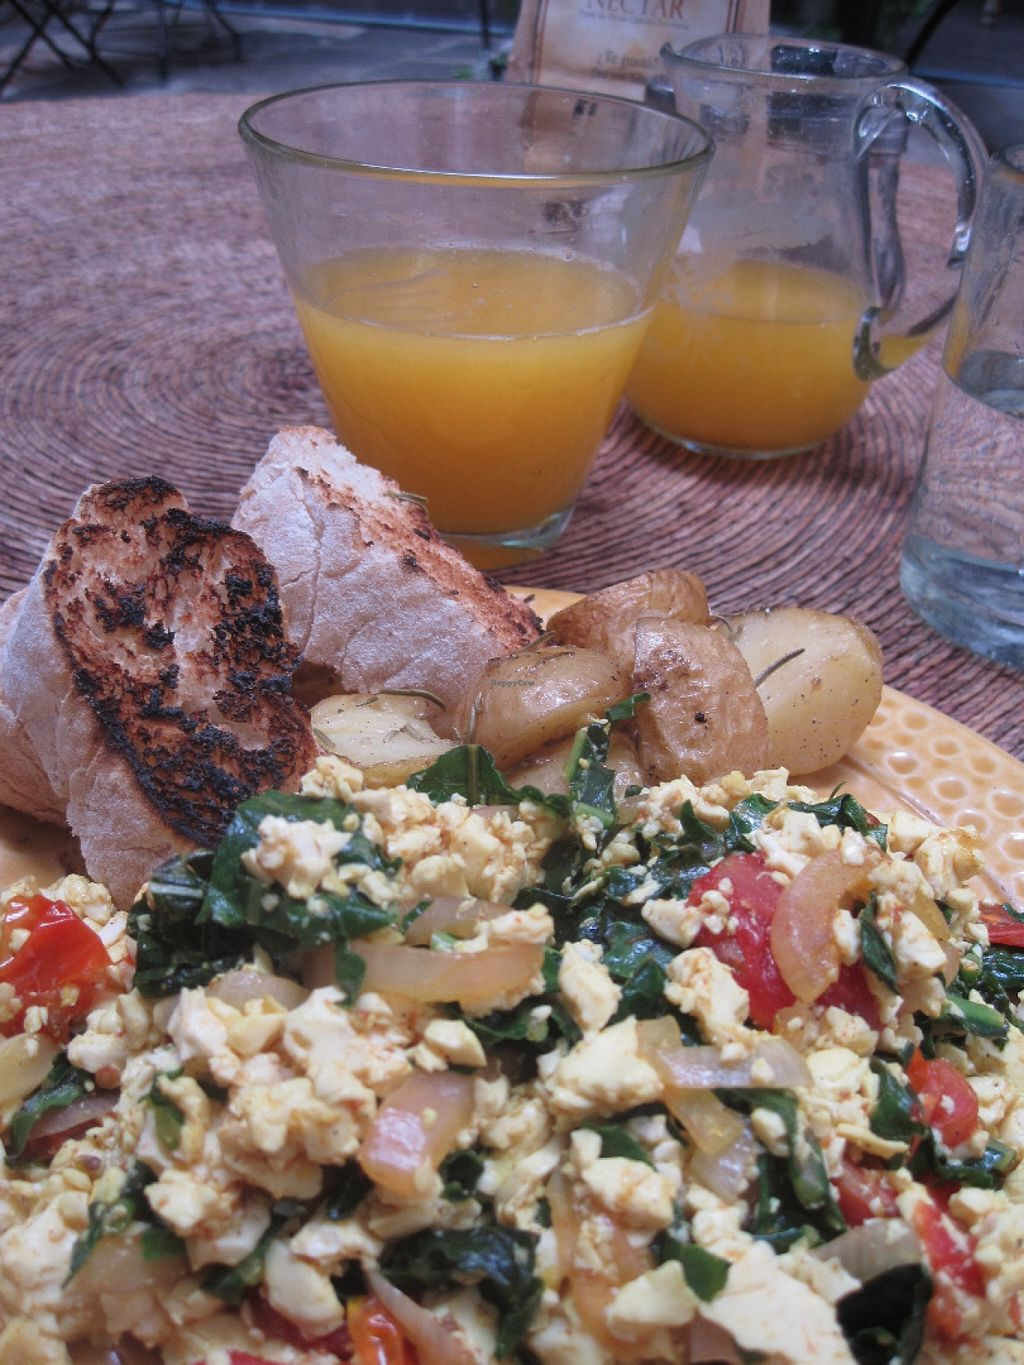 """Photo of Nectar  by <a href=""""/members/profile/sukifrance"""">sukifrance</a> <br/>Tofu breakfast.  Delish and oh so difficult to find in San Miguel <br/> July 1, 2016  - <a href='/contact/abuse/image/51693/157063'>Report</a>"""